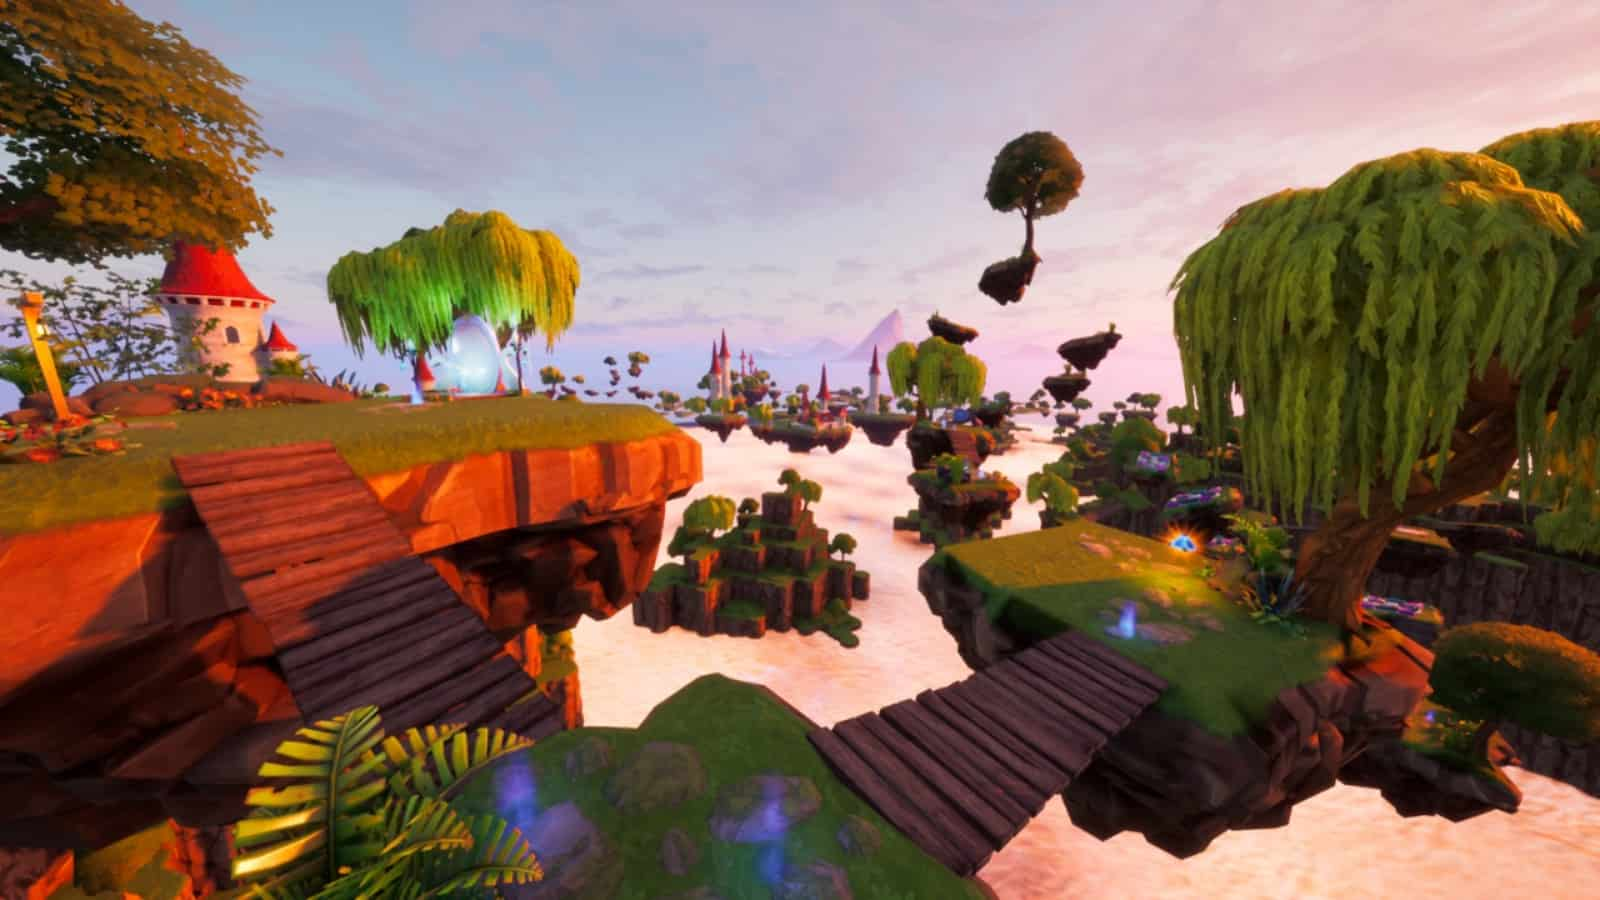 Fortnite Skyland: New Creative Map Code and All About it